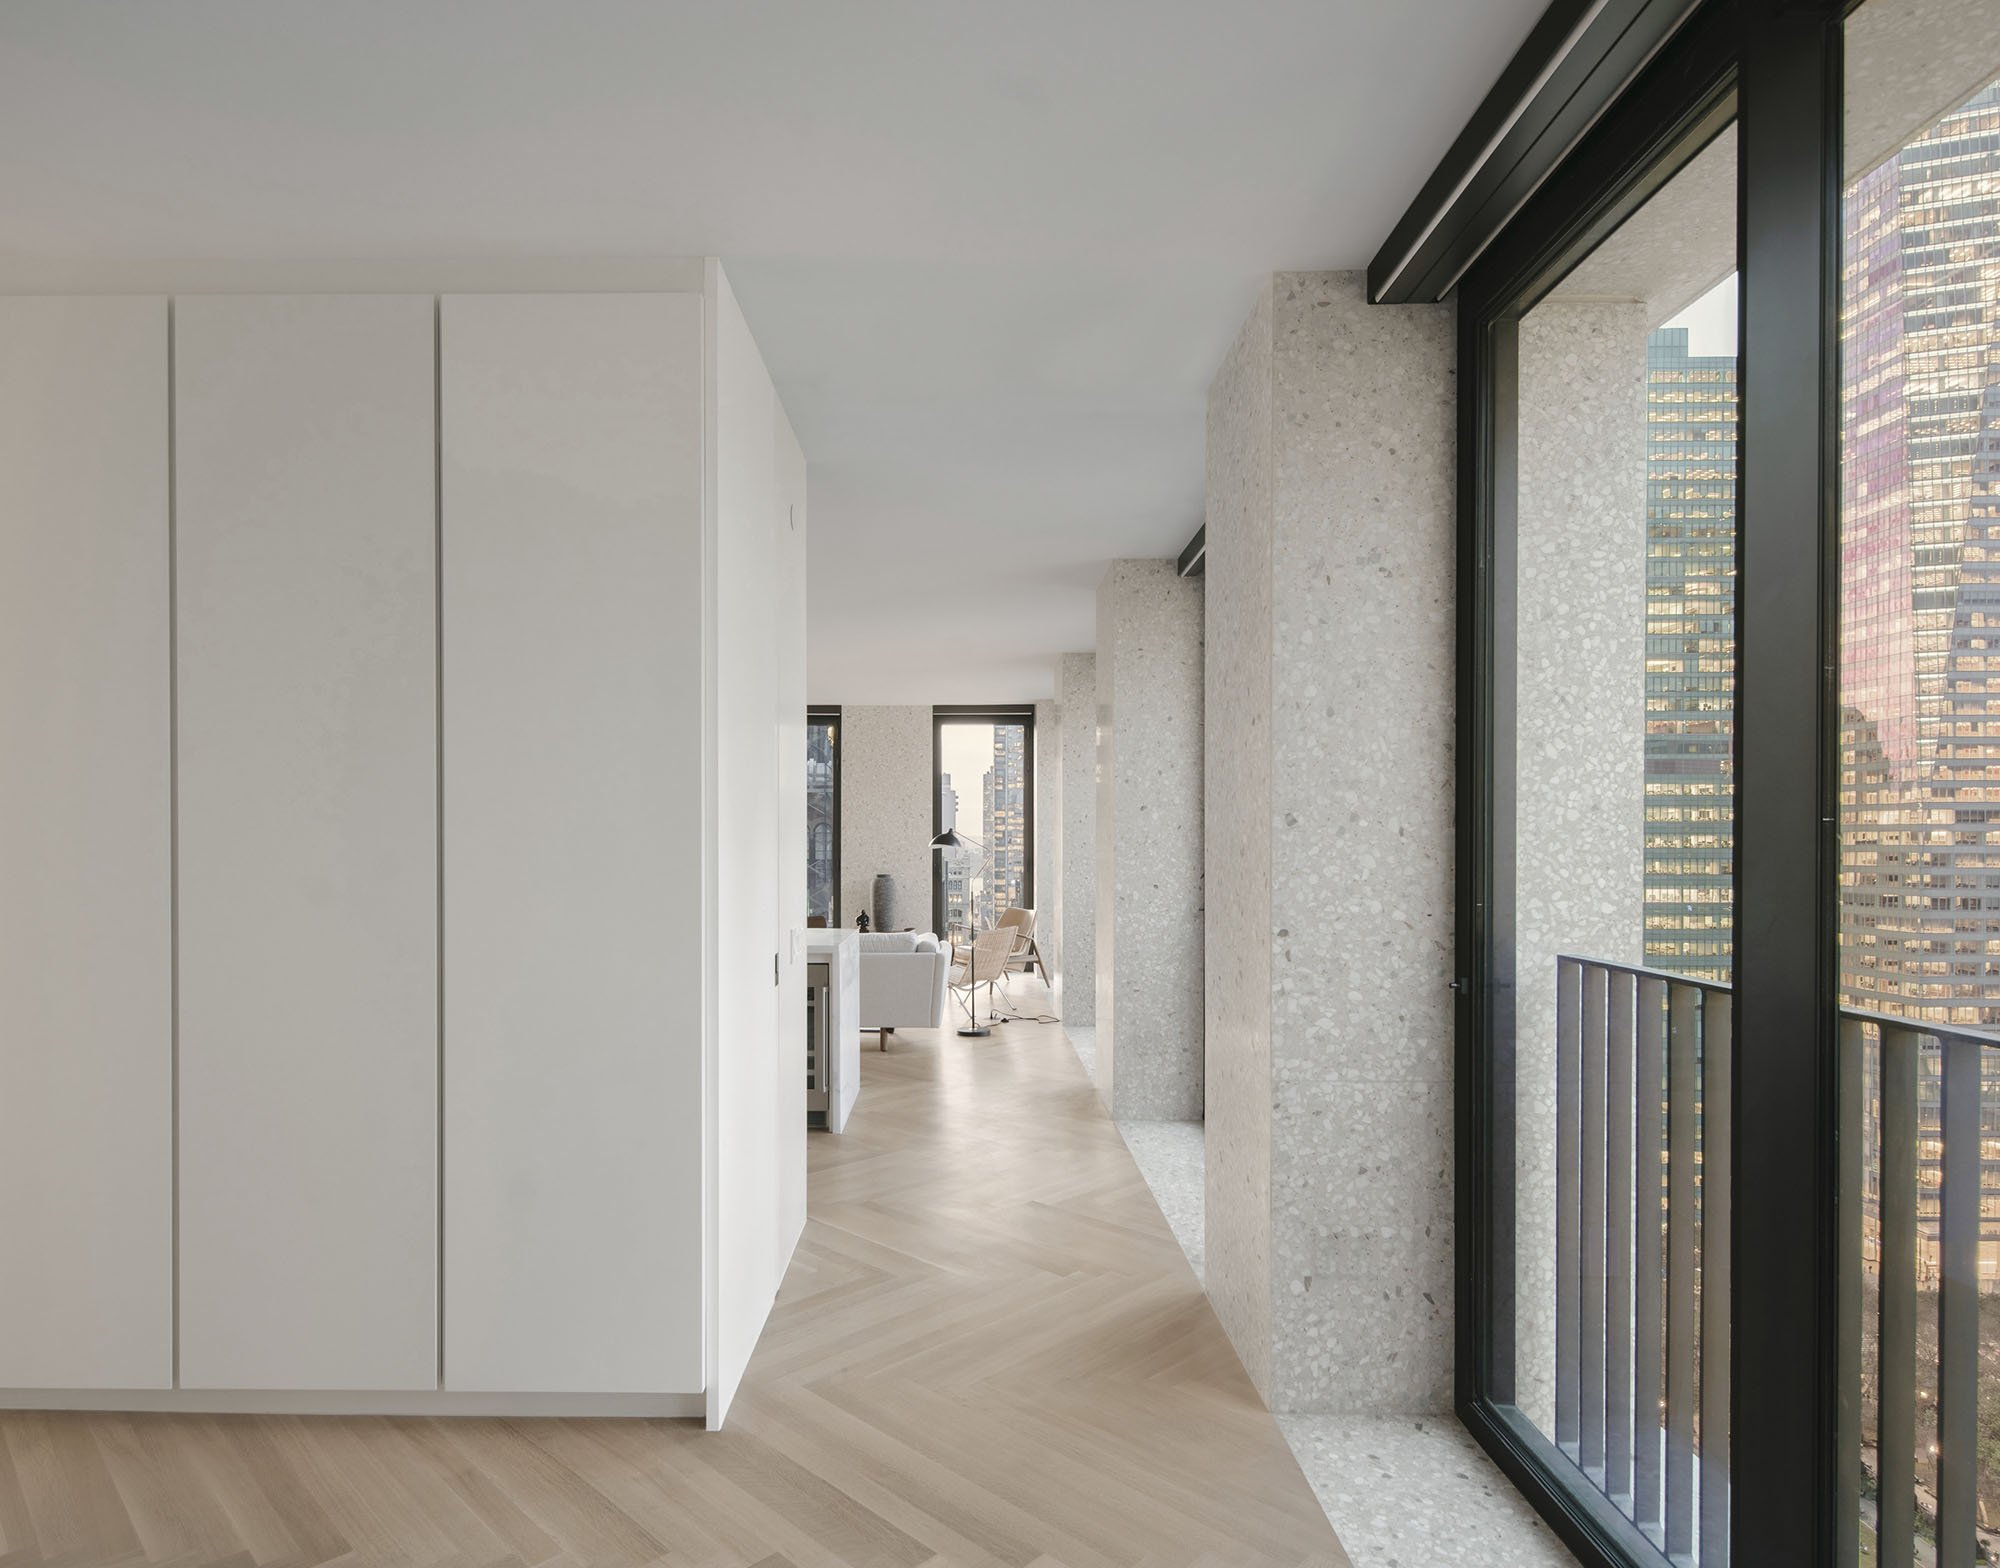 © Simon Menges The apartments' layout enables circulation around the perimeter of the building